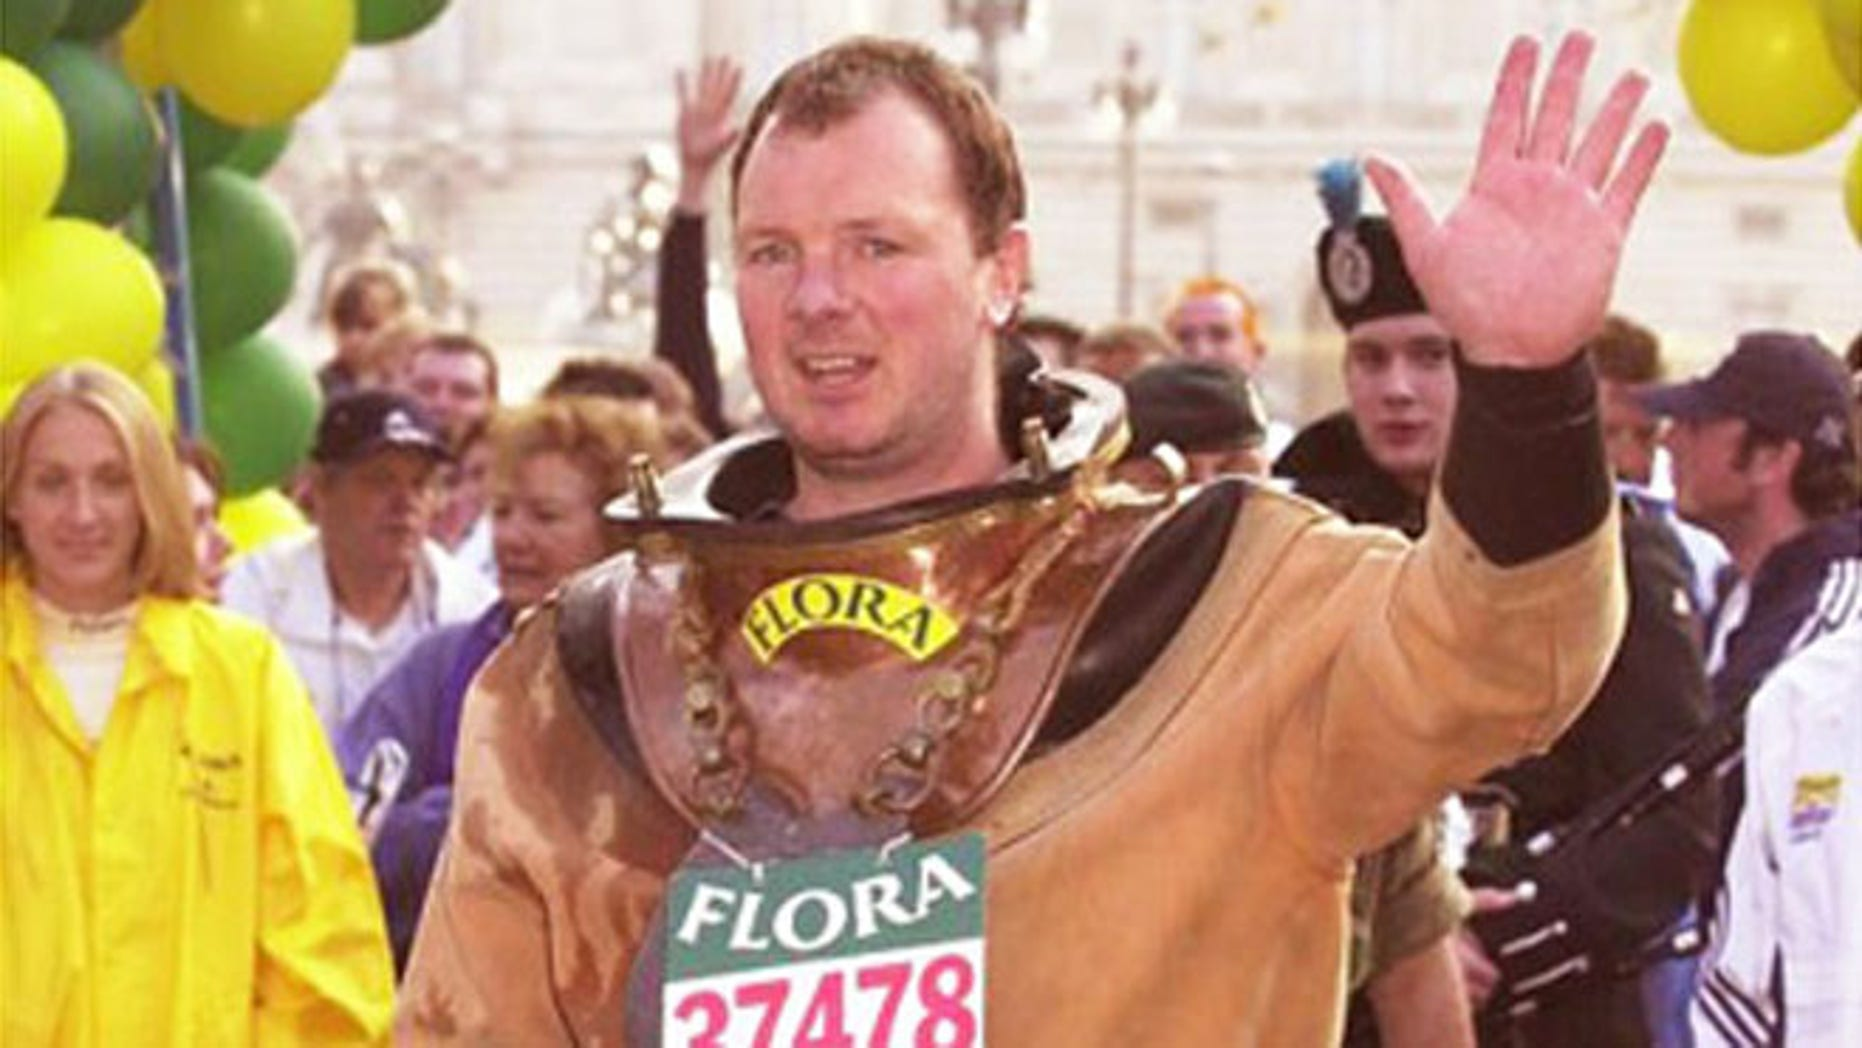 Lloyd Scott is known as the slowest marathon competitor in history